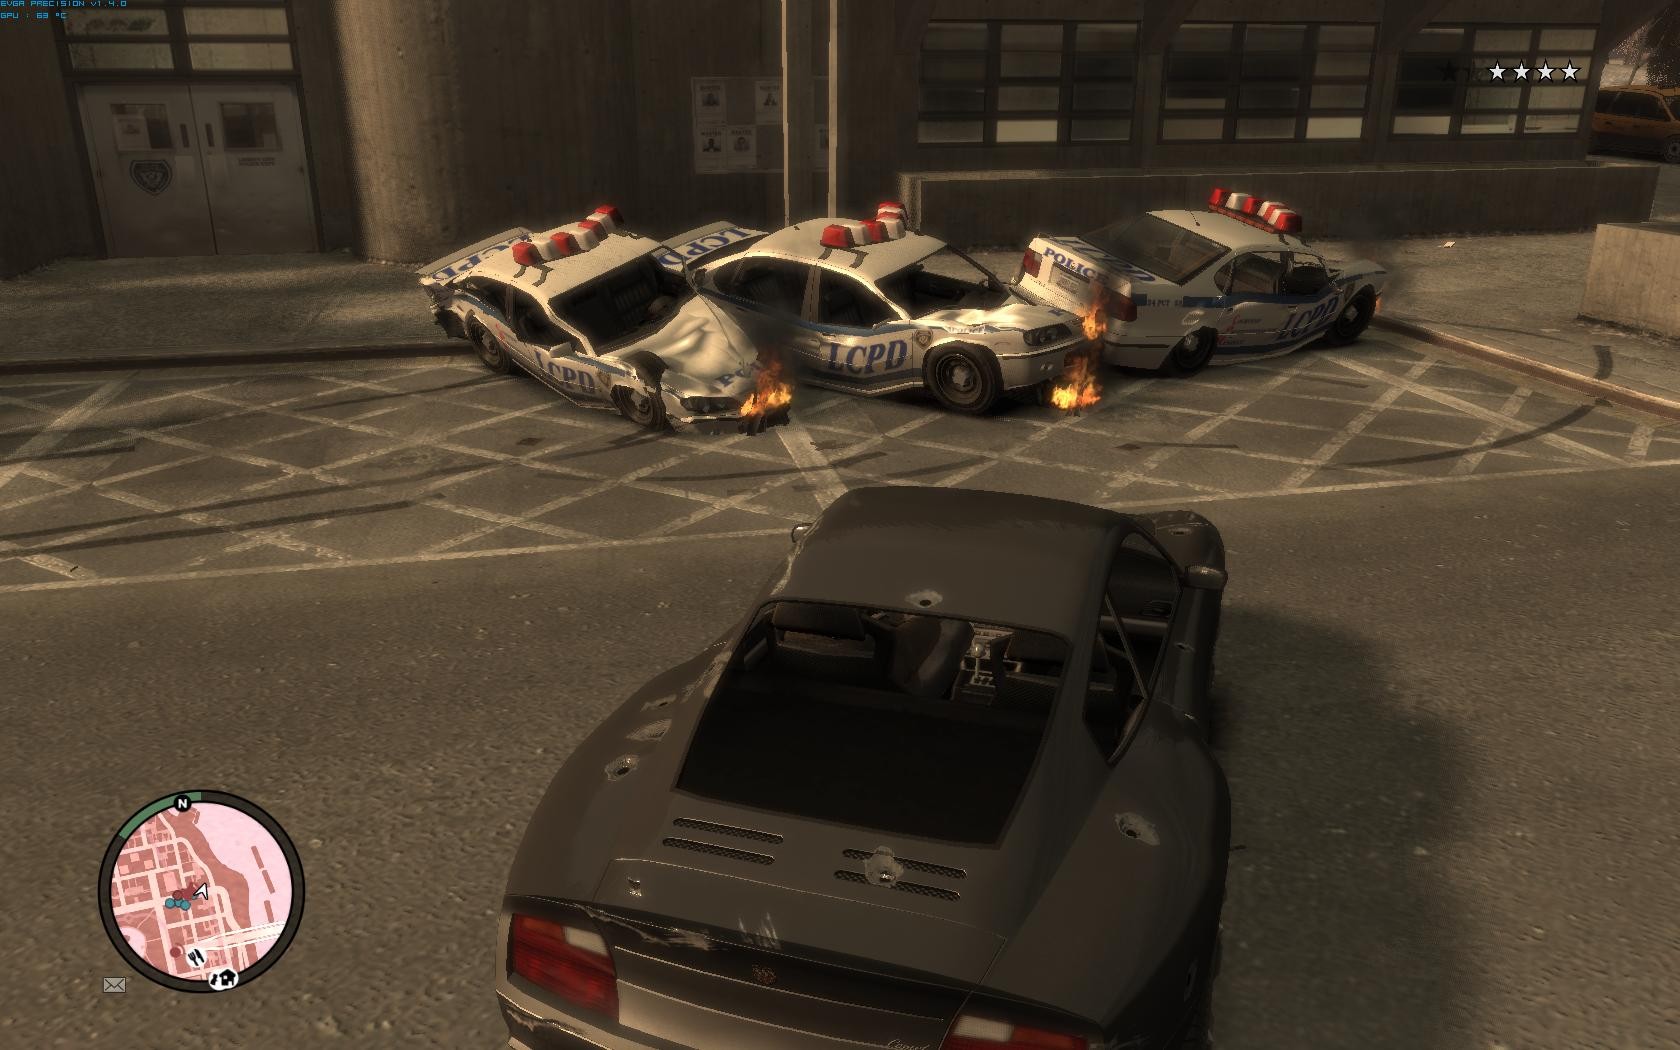 The GTA Place - GTA IV Killer Cars Mod